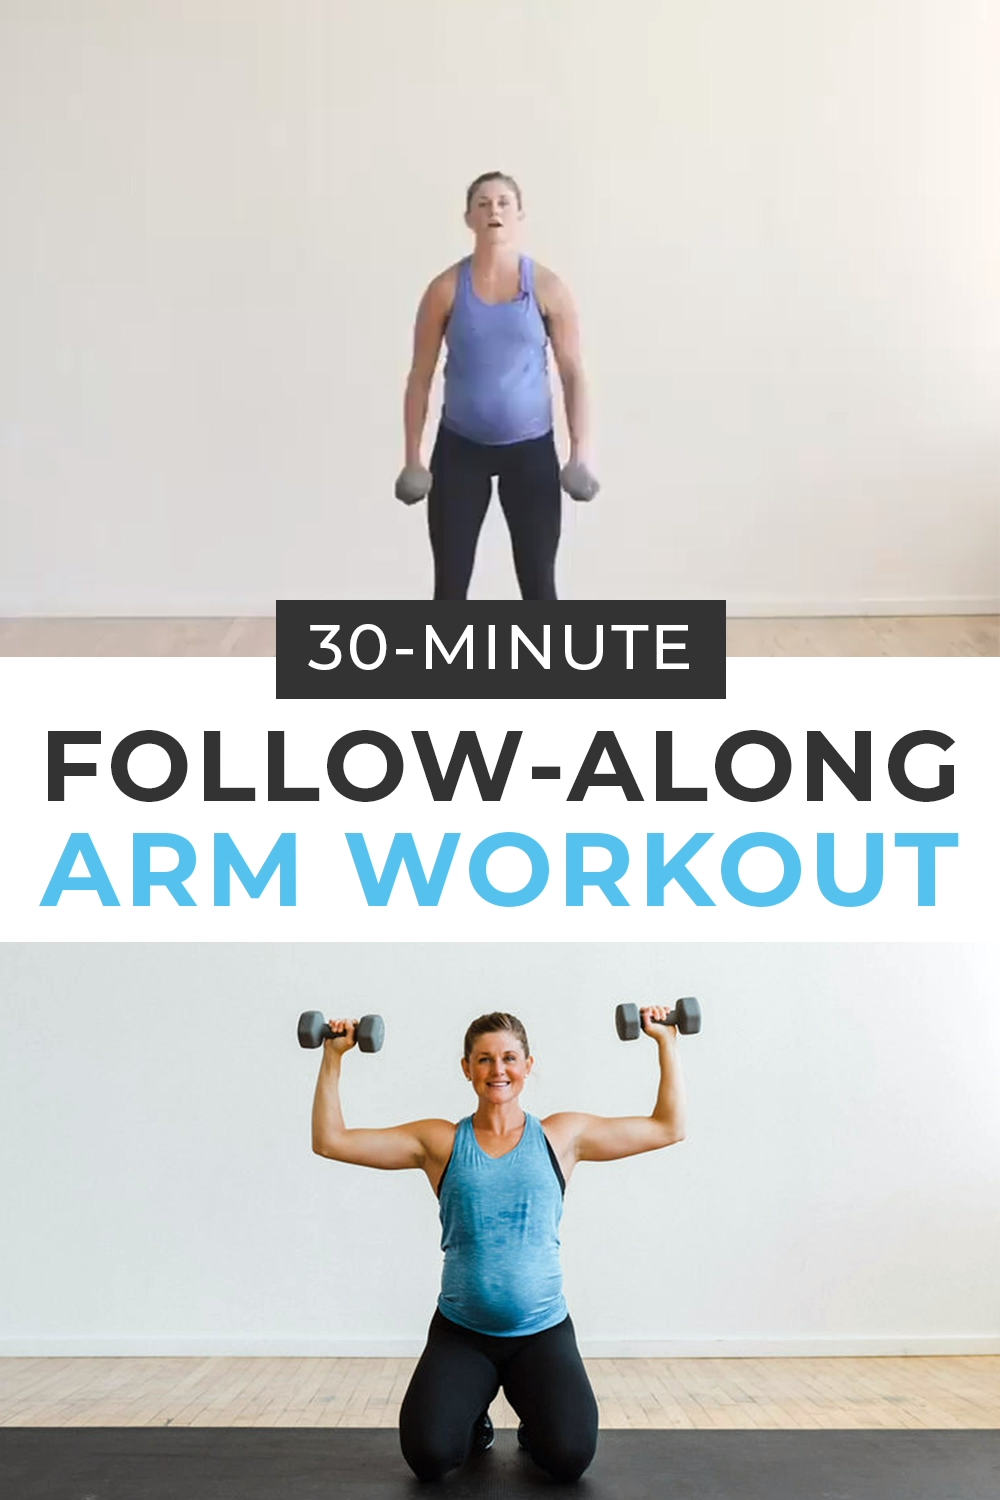 30-Minute Arm Workout with Dumbbells